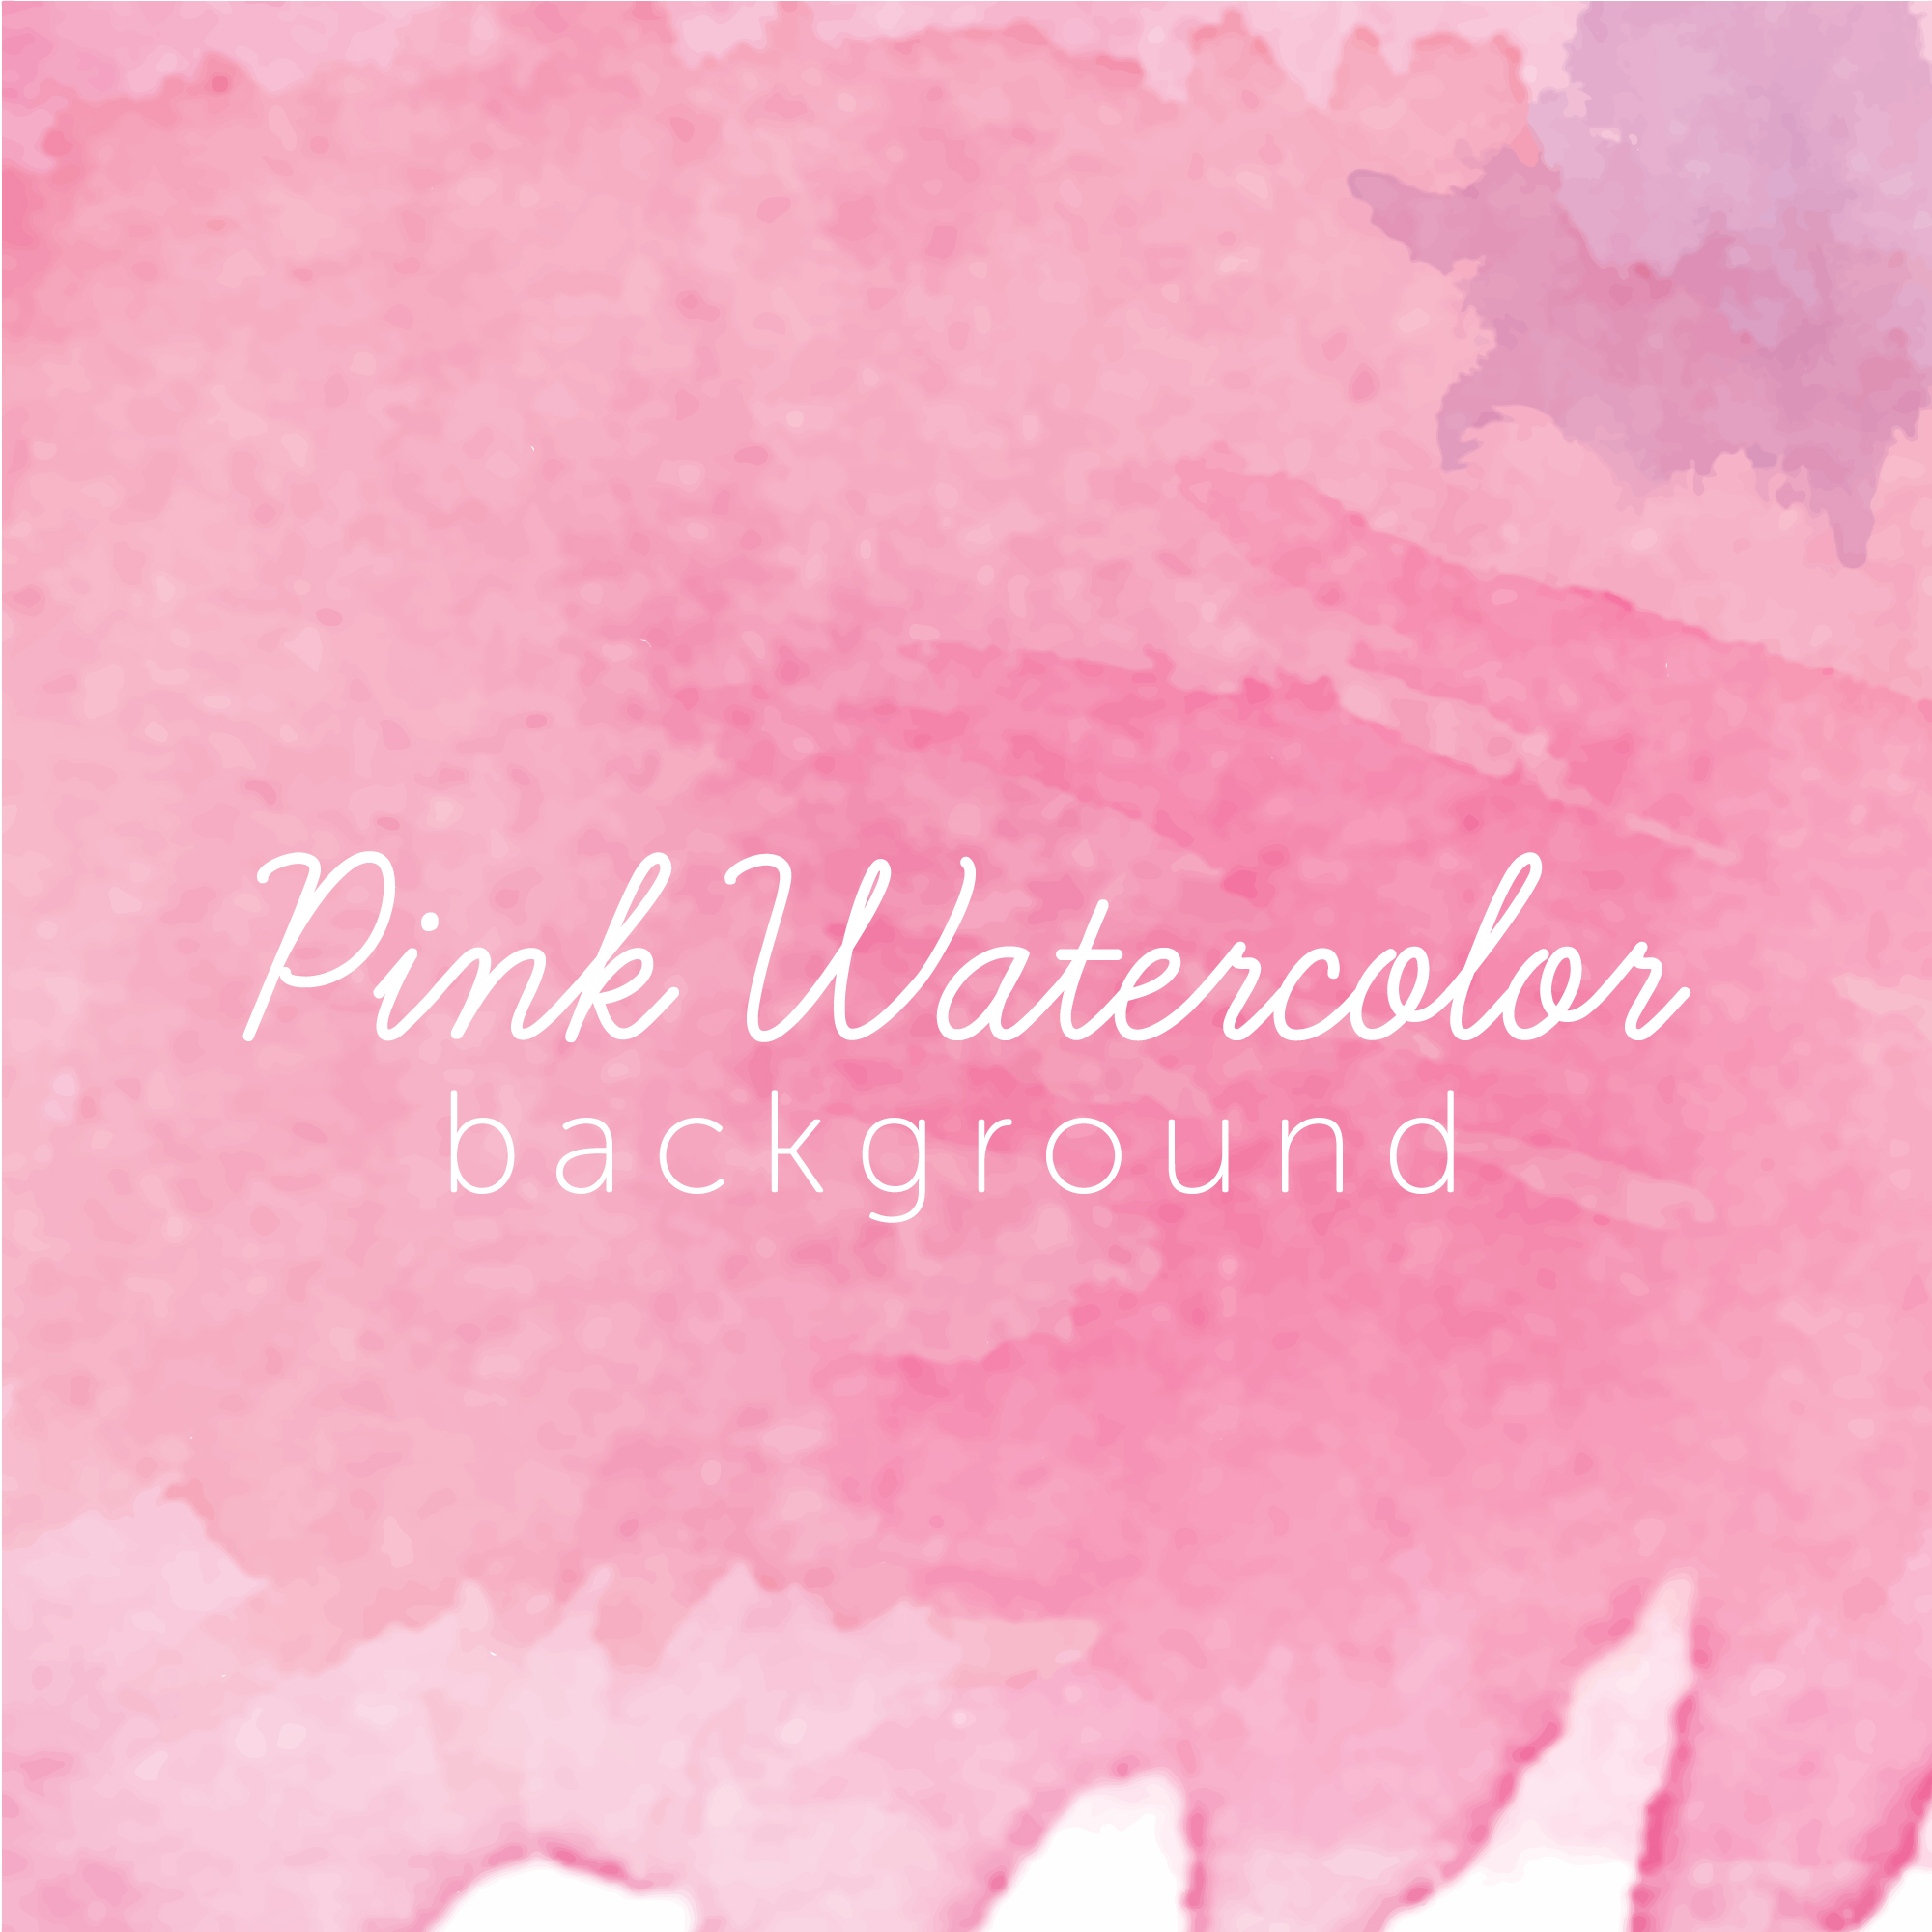 Realistic pink watercolor texture